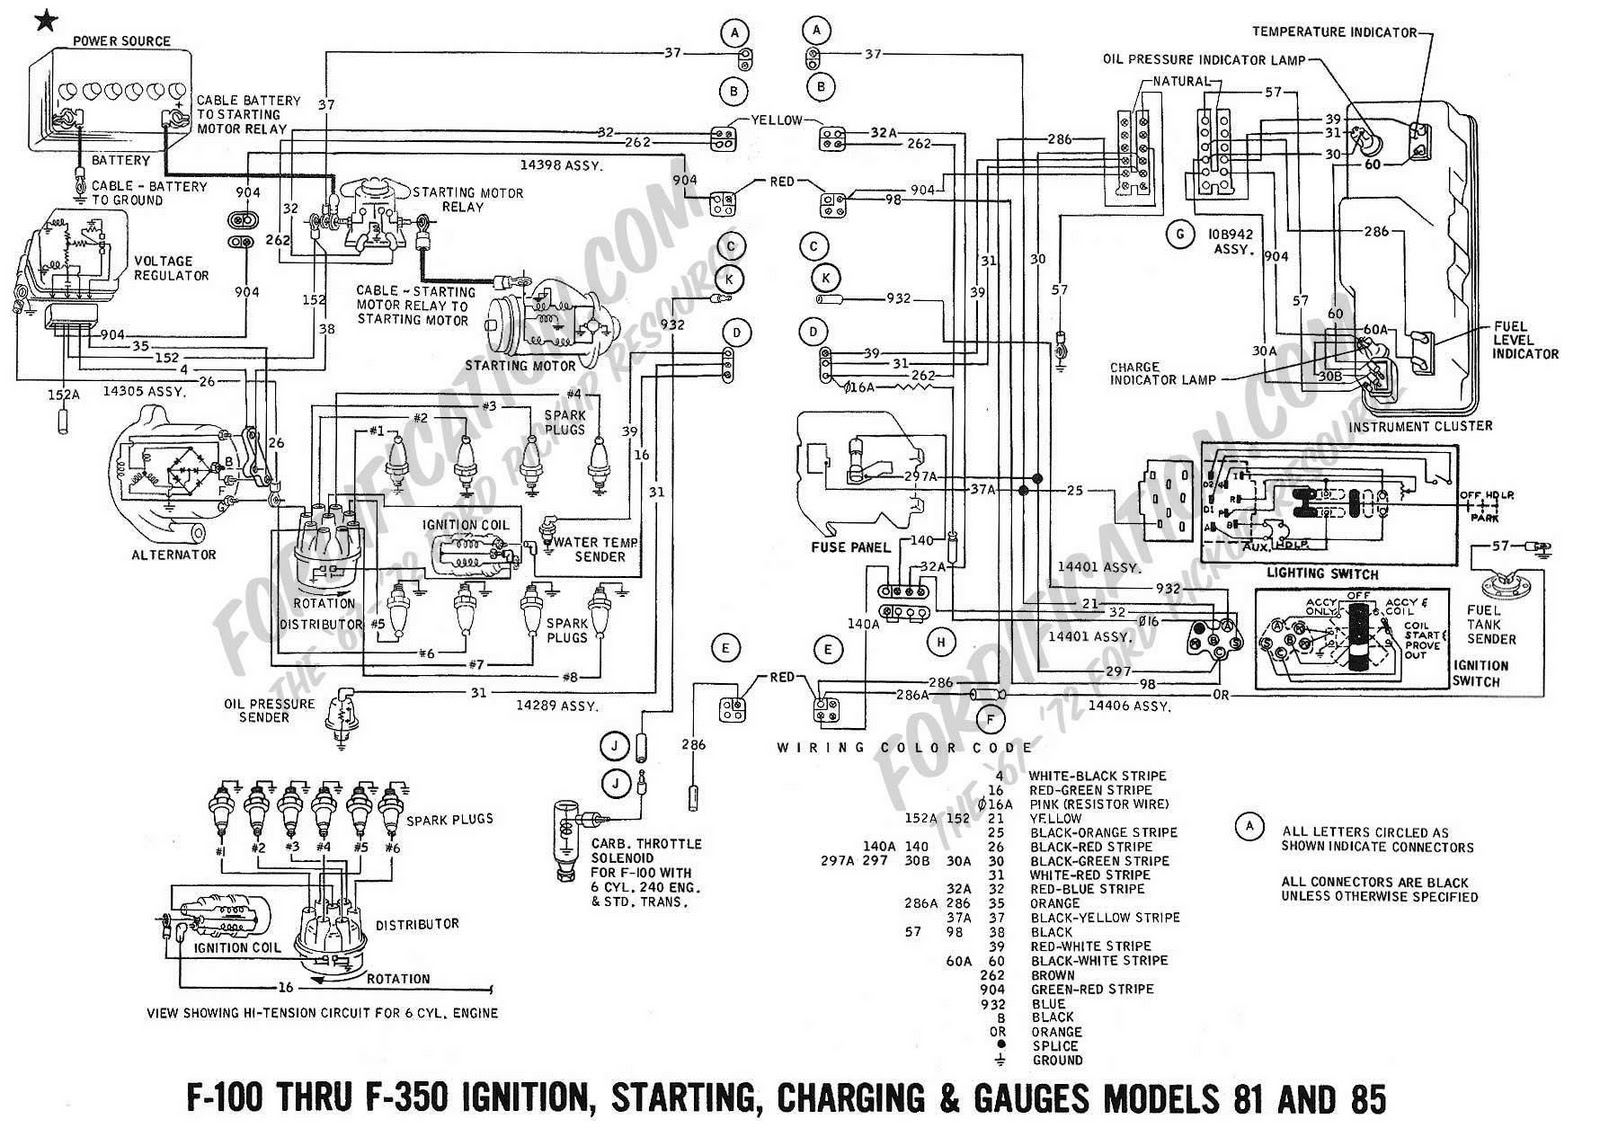 Ford F F Ignition C Starting C Charging C And Gauges Wiring Diagram on 1964 ford fairlane wiring diagram